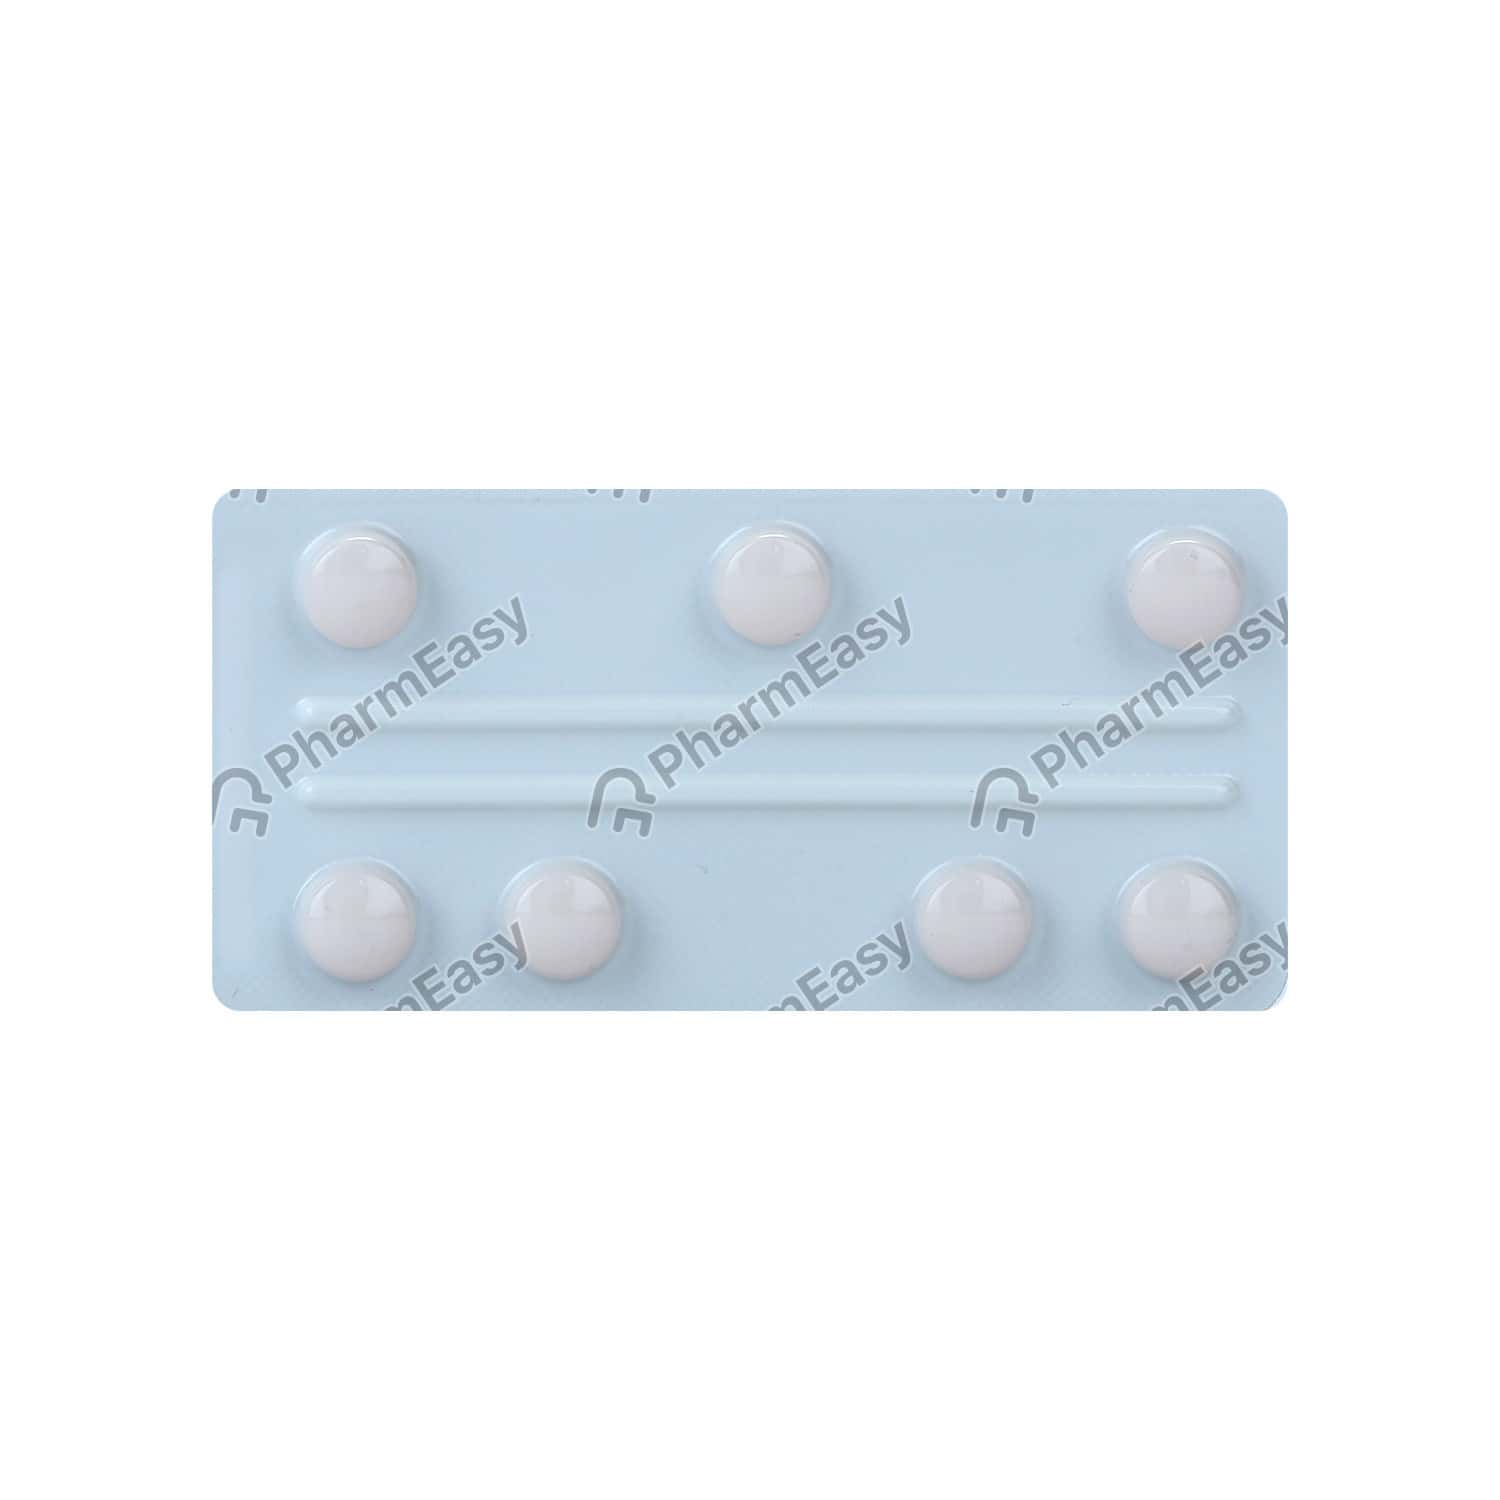 Istavel 50mg Strip Of 7 Tablets